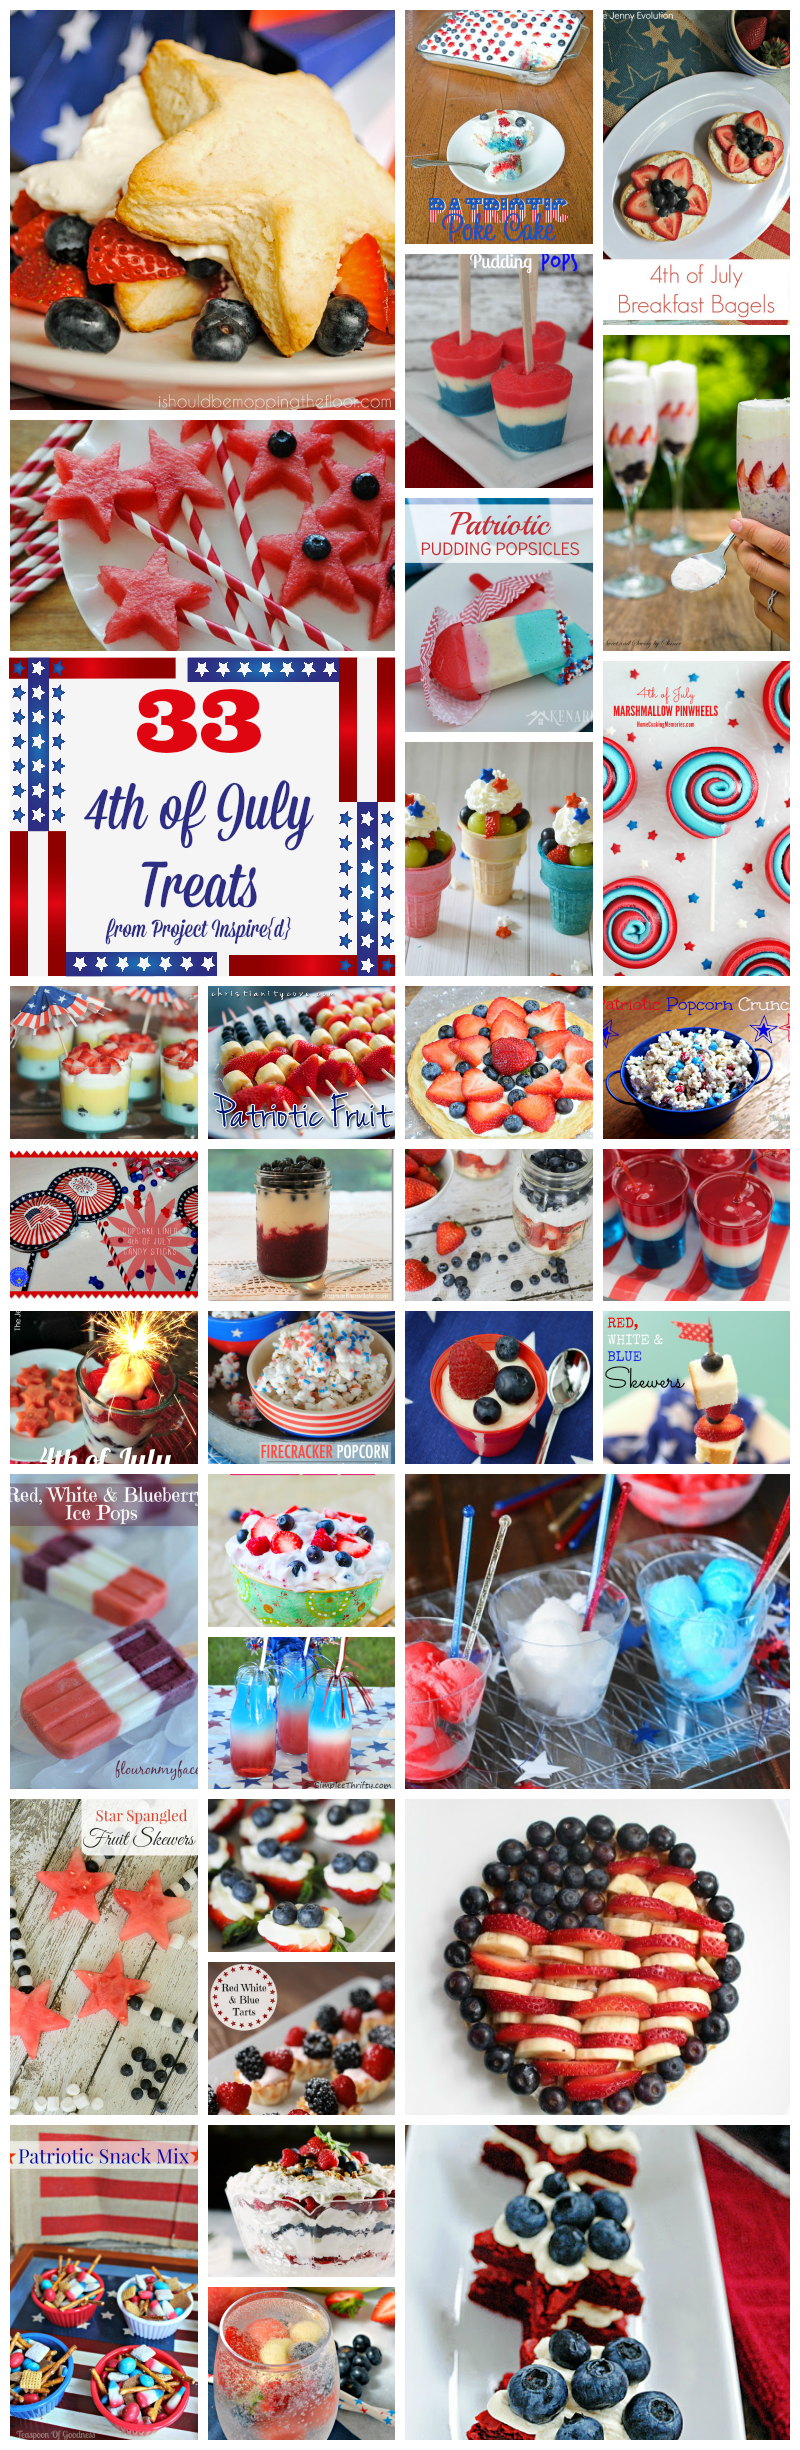 33 Fourth of July Treats